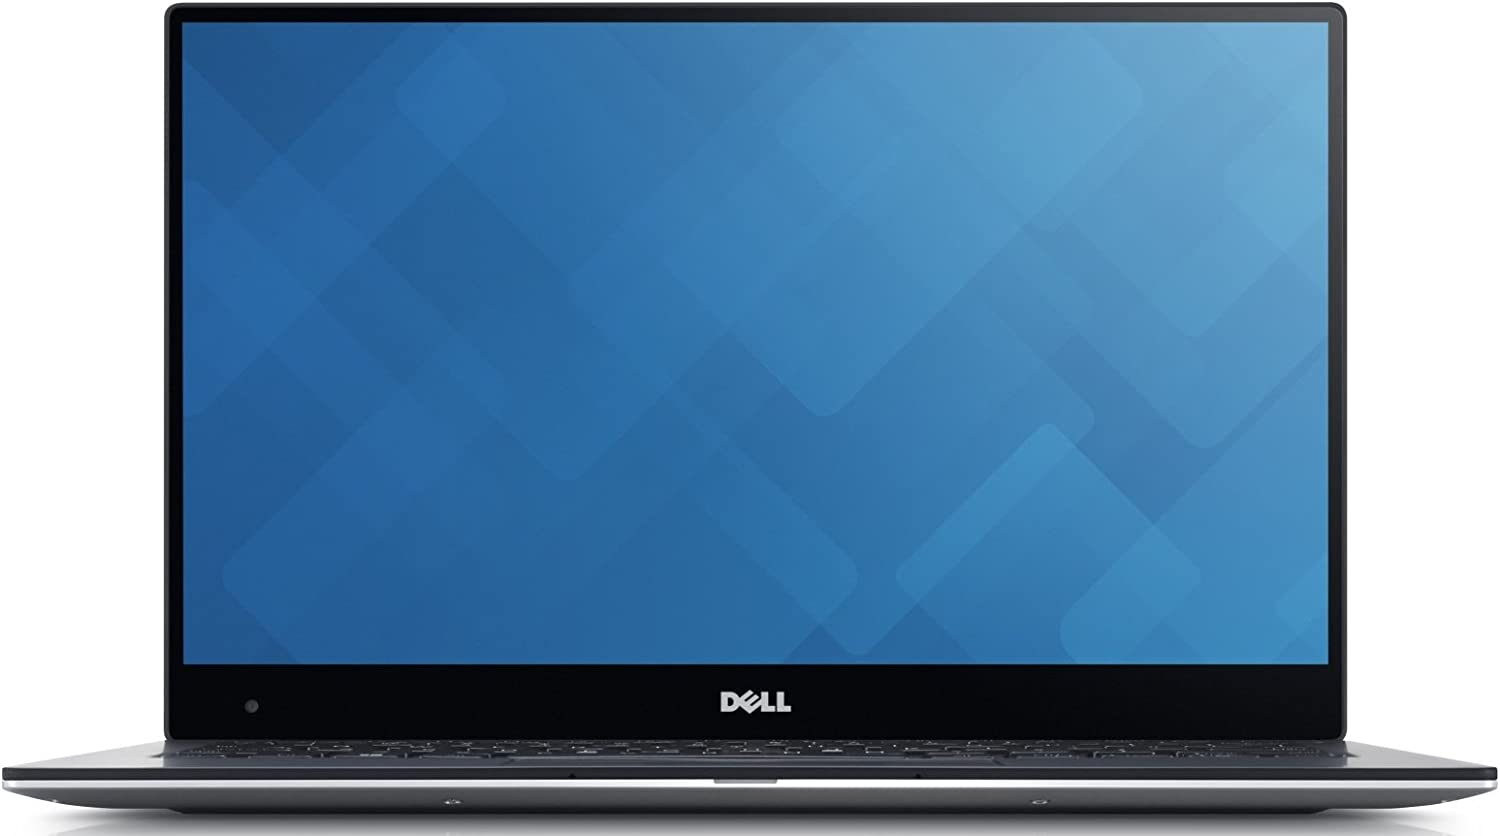 "Dell XPS 13 9360 13.3"" FHD InfinityEdge Display (Non-Touch) Laptop Intel Core i5-8250U, 8GB LPDDR3-1866, 256GB SSD Windows 10 Pro"